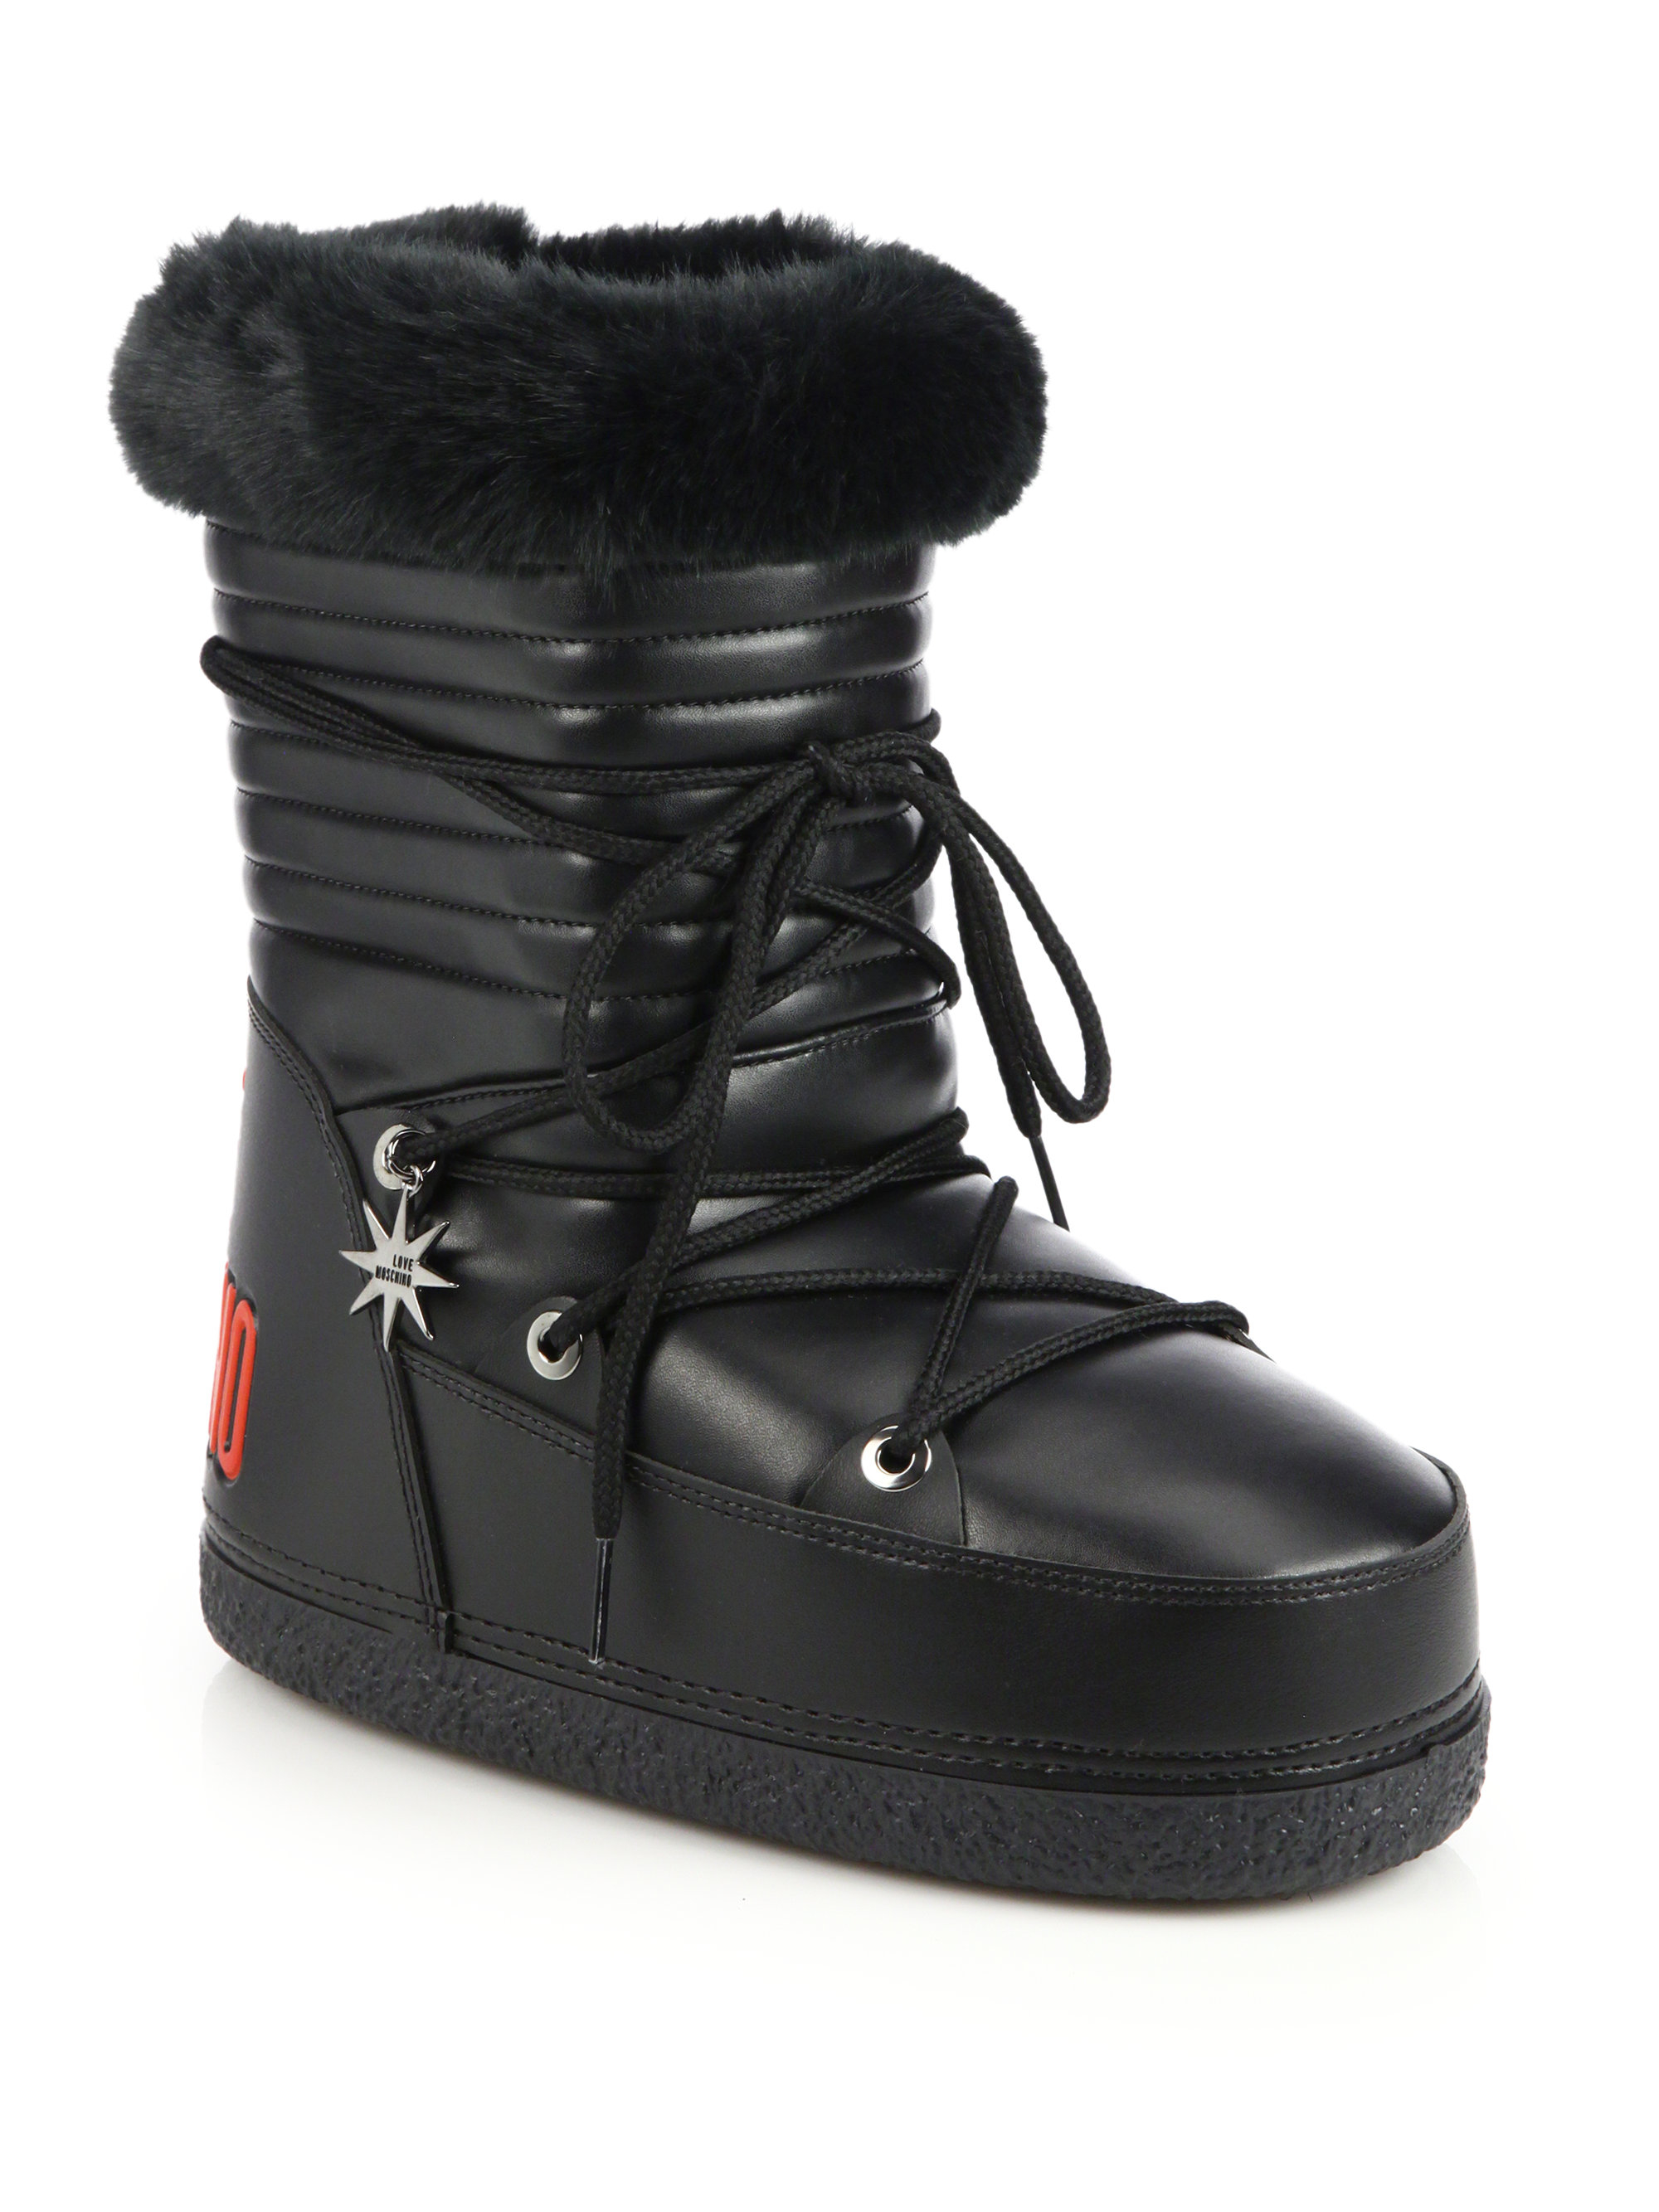 Lyst Love Moschino Faux Fur Trimmed Moon Boots In Black